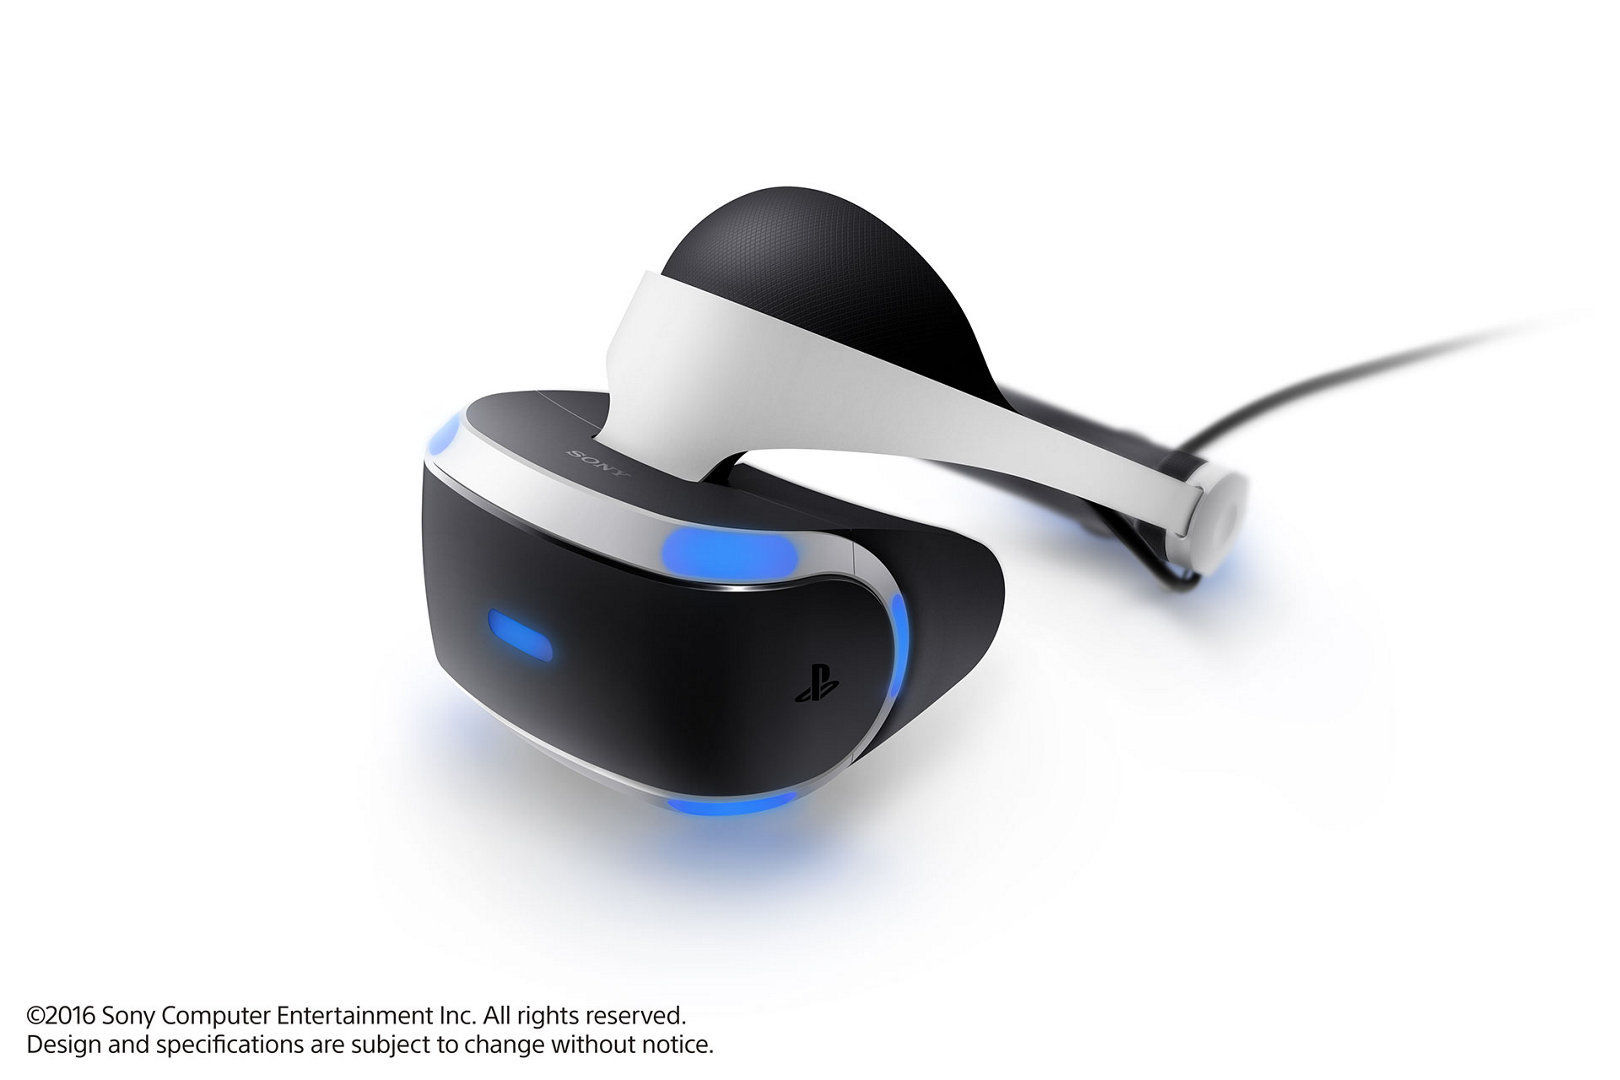 You may need to sell some existing gadgets to make way for the new PlayStation VR system